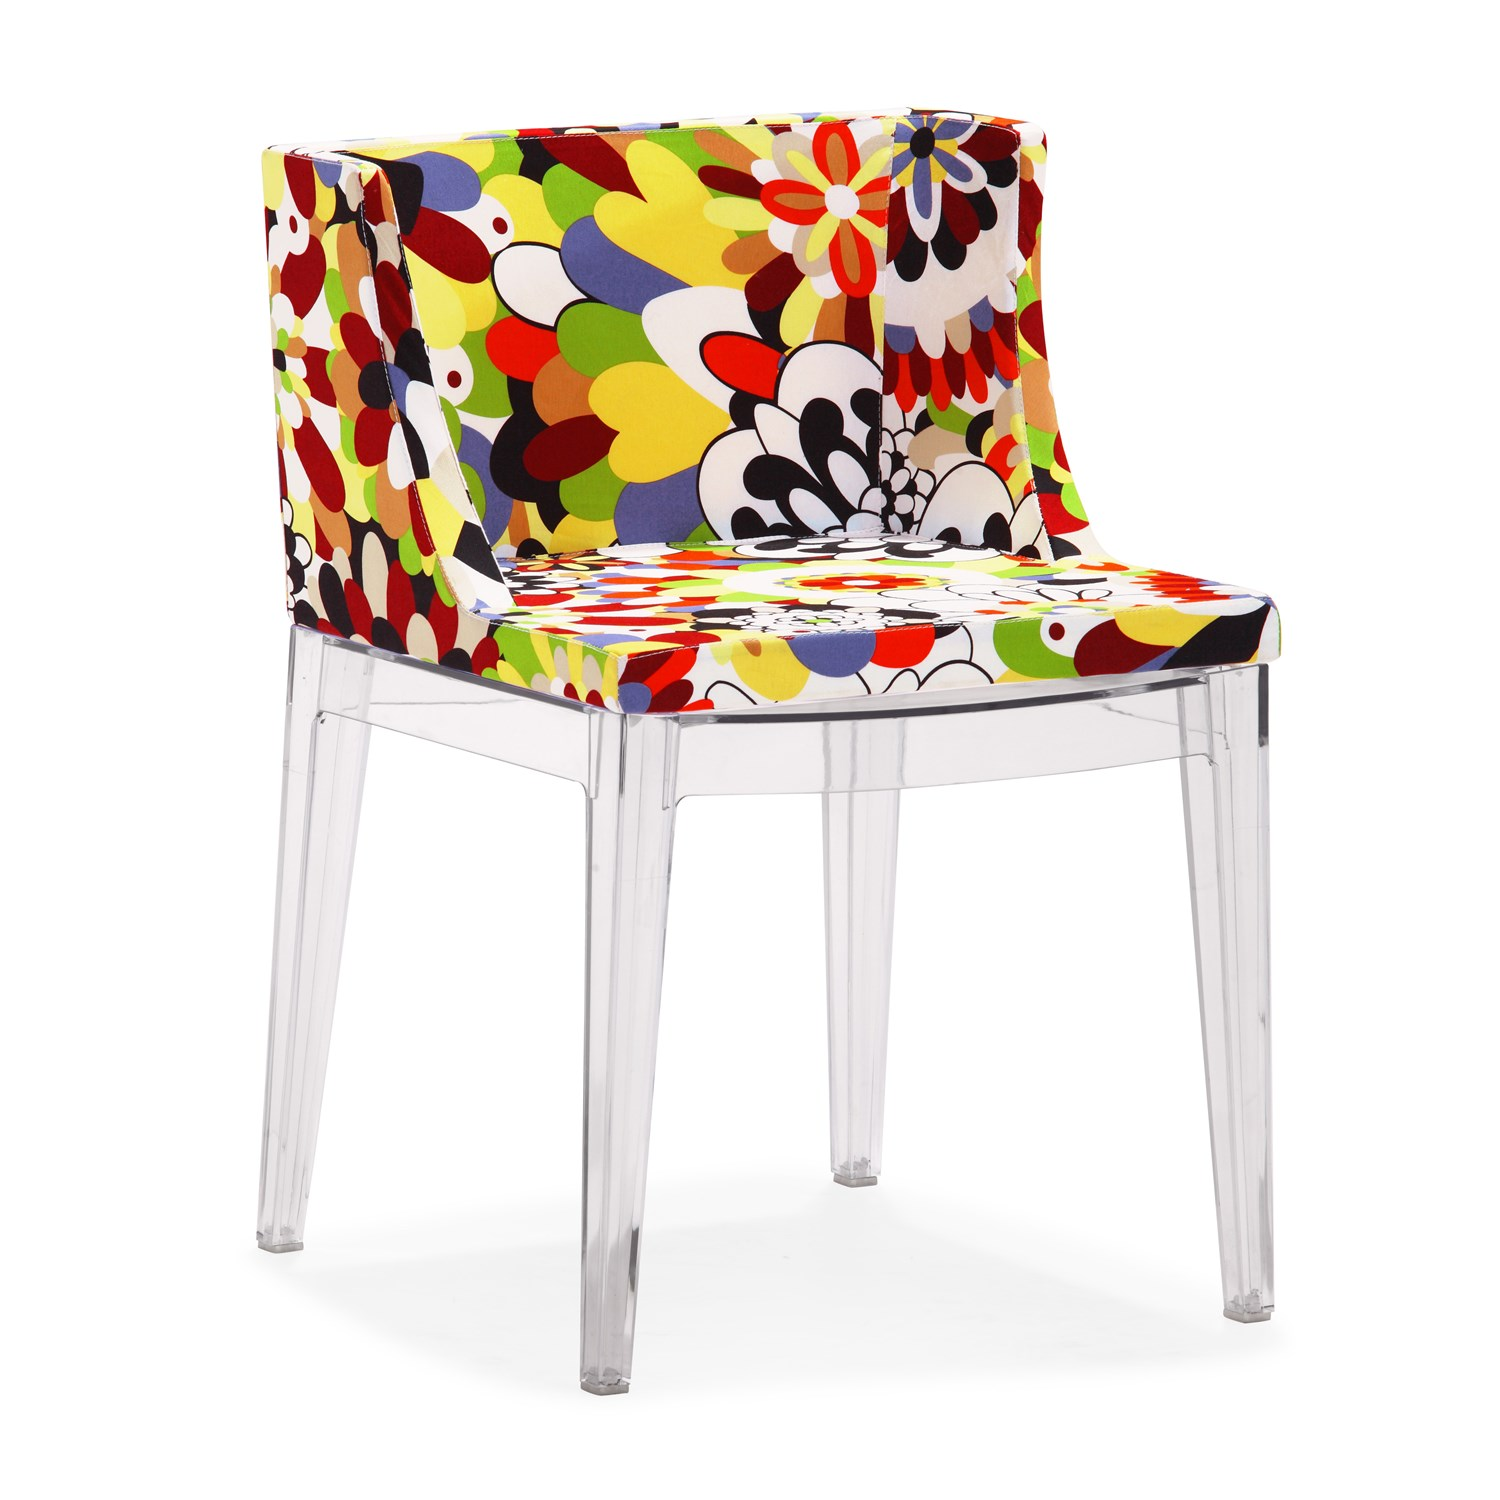 This Funky Chair Is Fully Covered In A Soft Fabric Upholstery Padded With  Plush Cushioning. The Pattern Is Like A Mixture Of Pop Art With A Classic  Floral ...